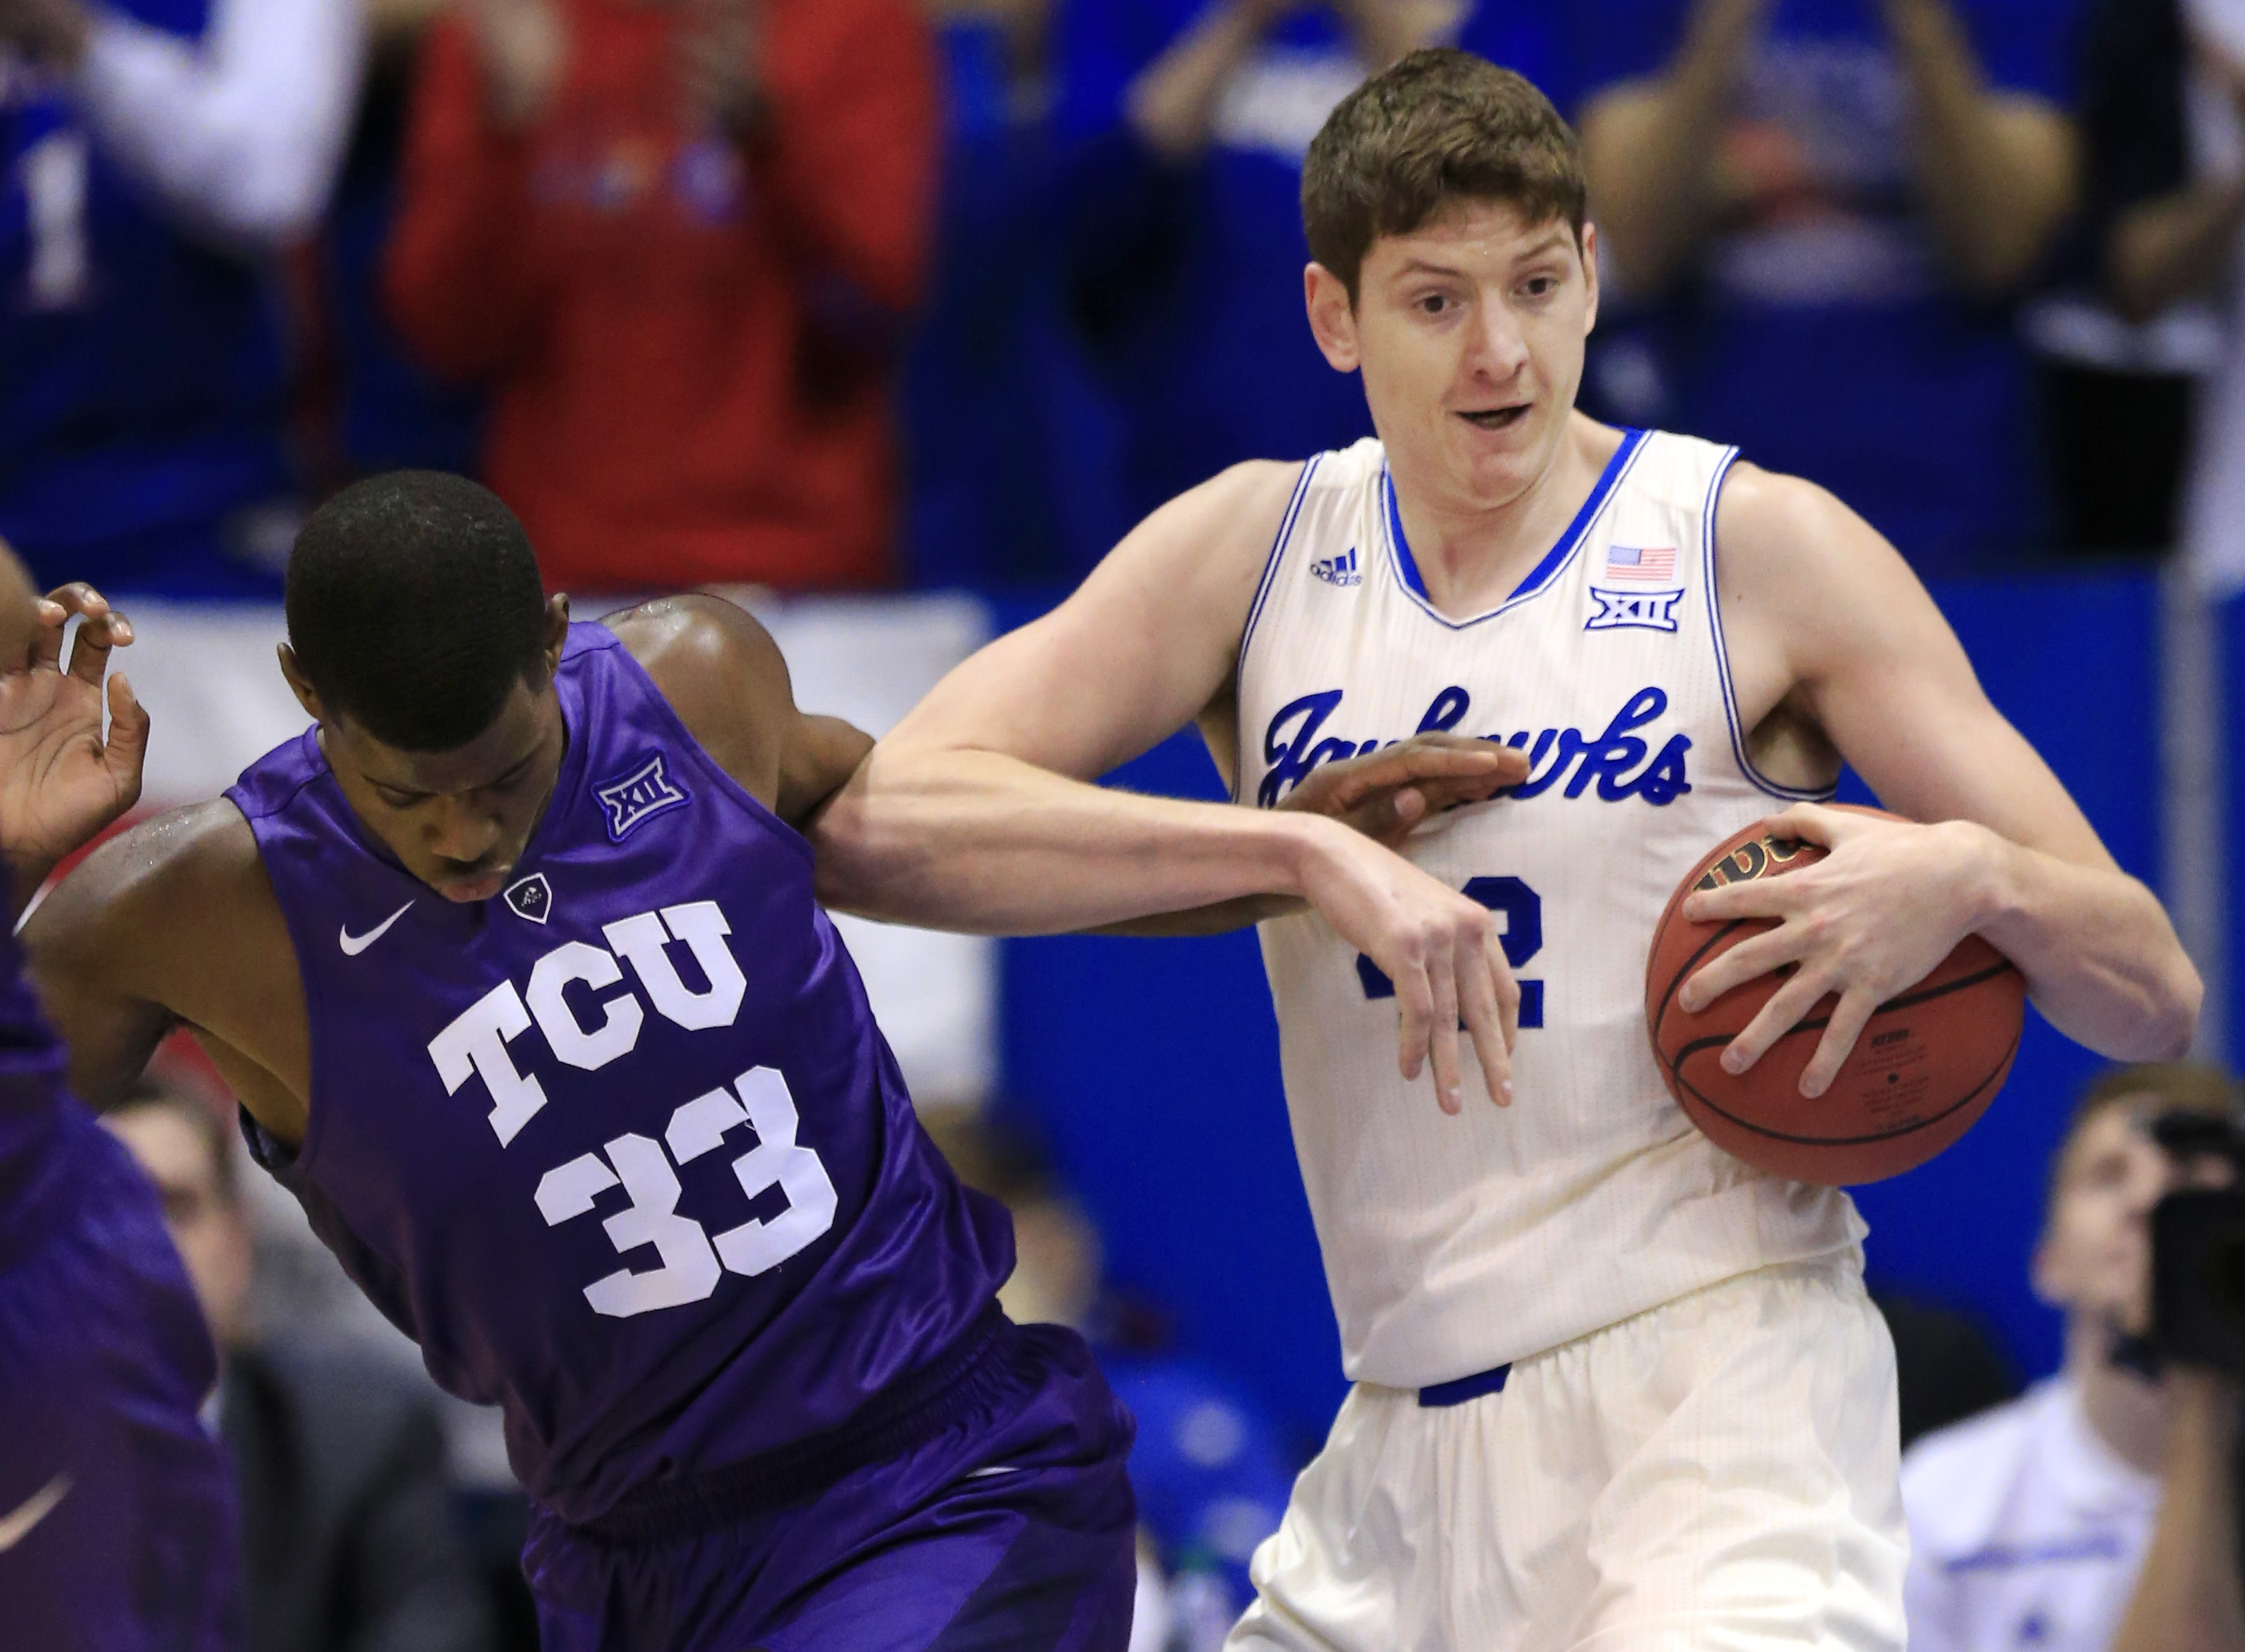 Kansas forward Hunter Mickelson (42) rebounds against TCU forward Chris Washburn (33) during the first half of an NCAA college basketball game in Lawrence, Kan., Saturday, Jan. 16, 2016. (AP Photo/Orlin Wagner)